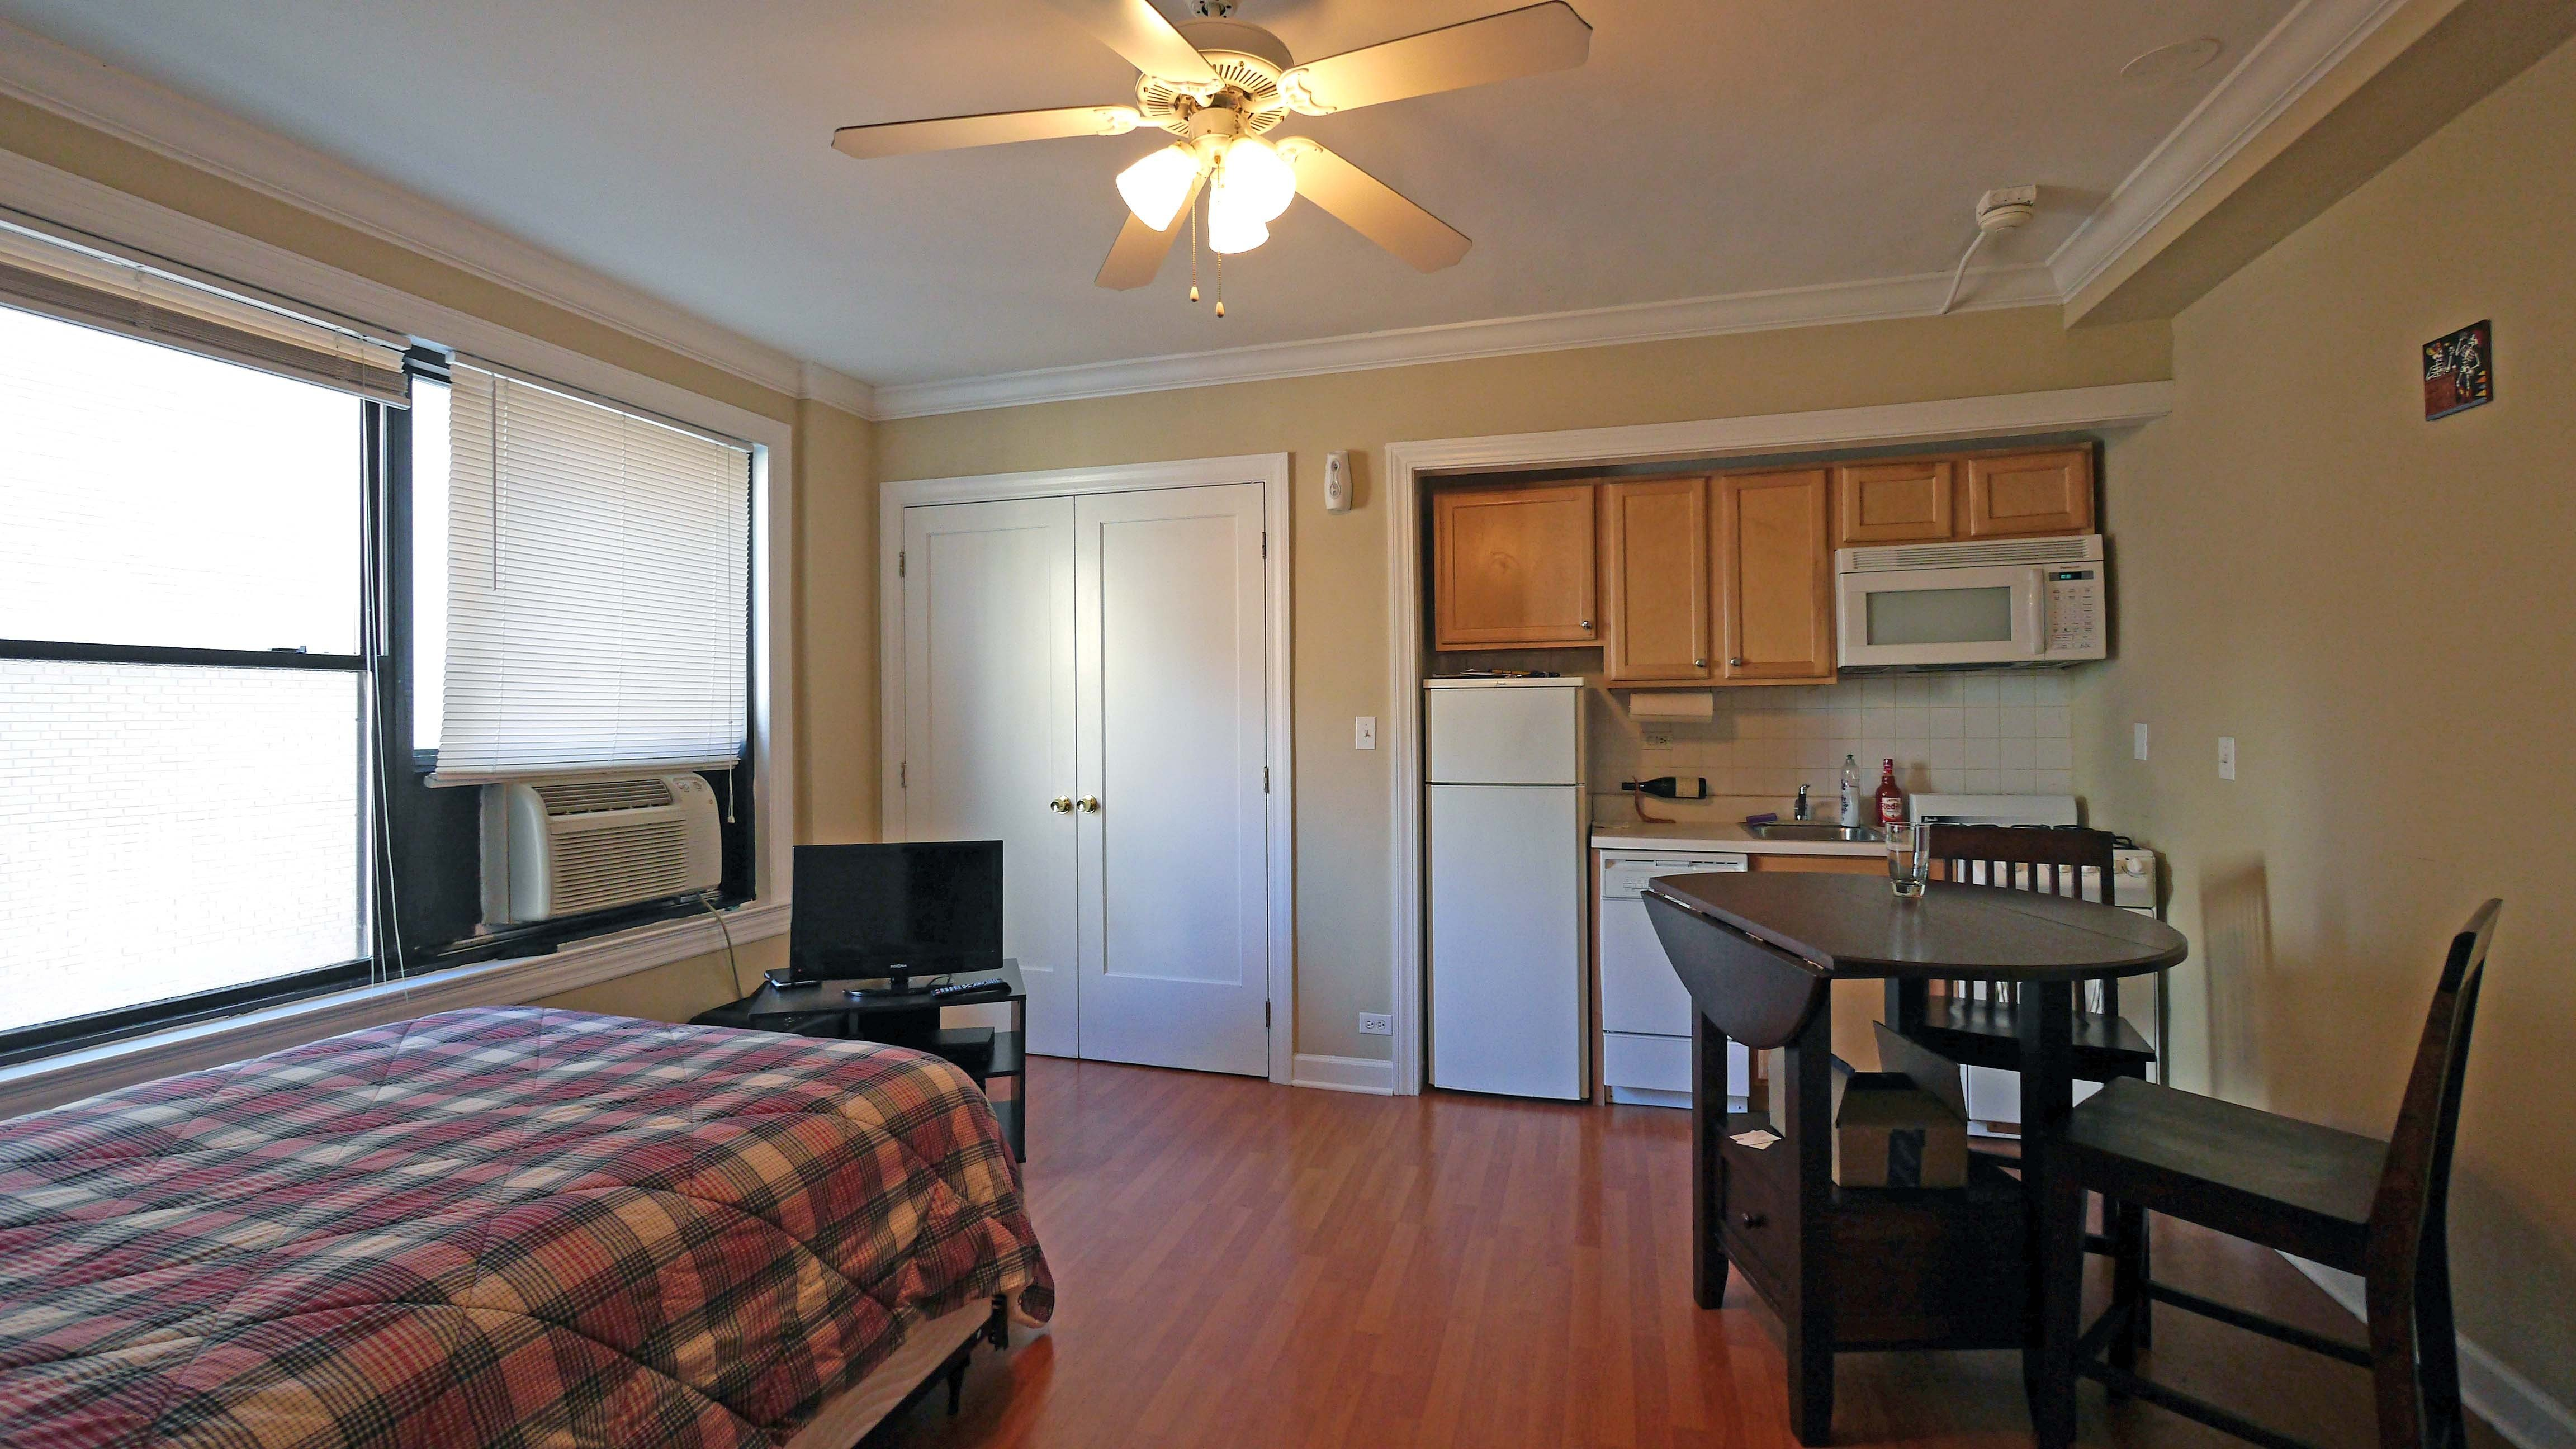 Best One Bedroom Apartments For Rent In Chicago With ...